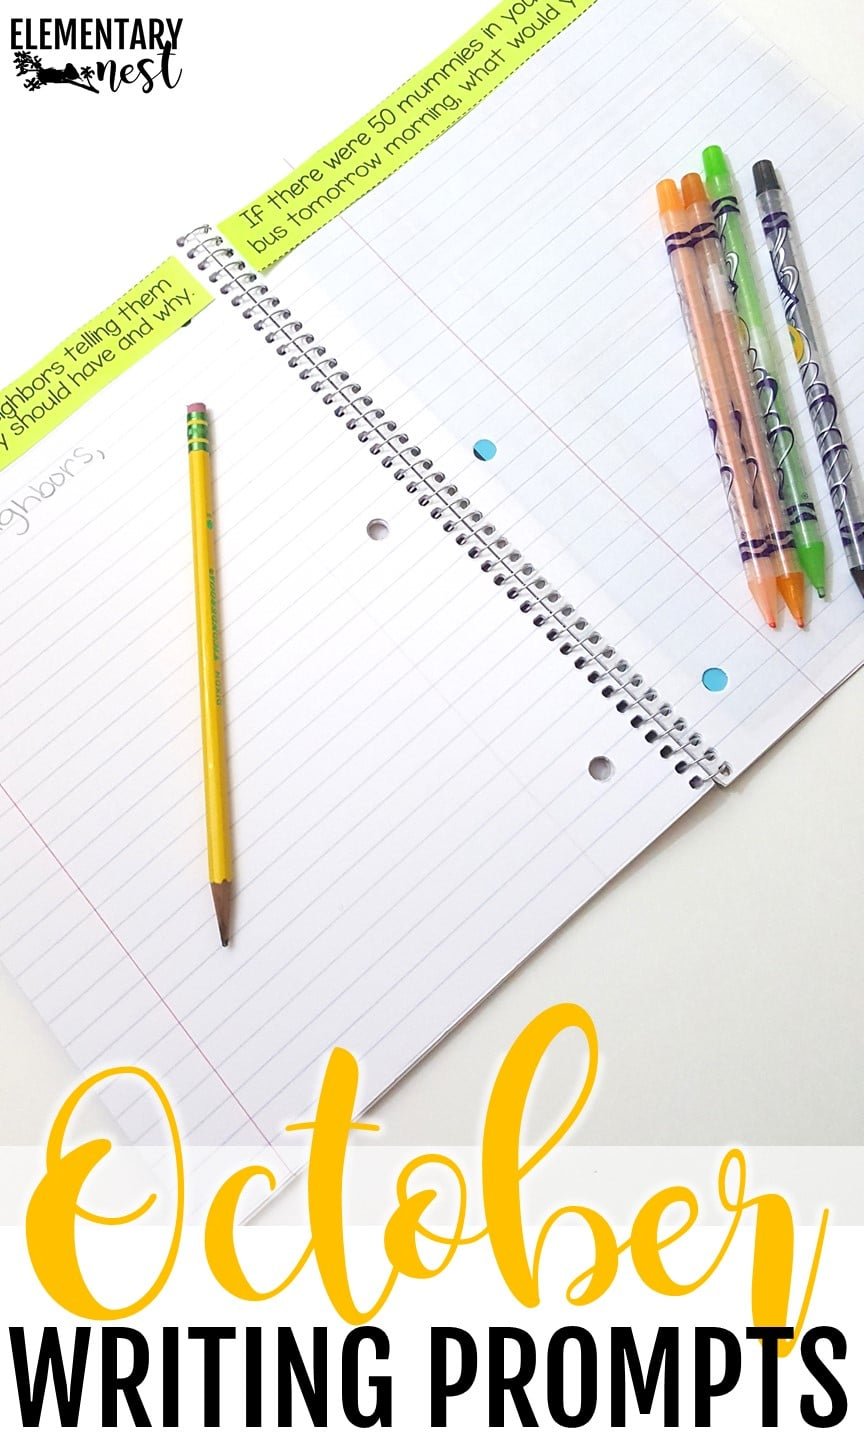 October writing prompts for student inspiration.